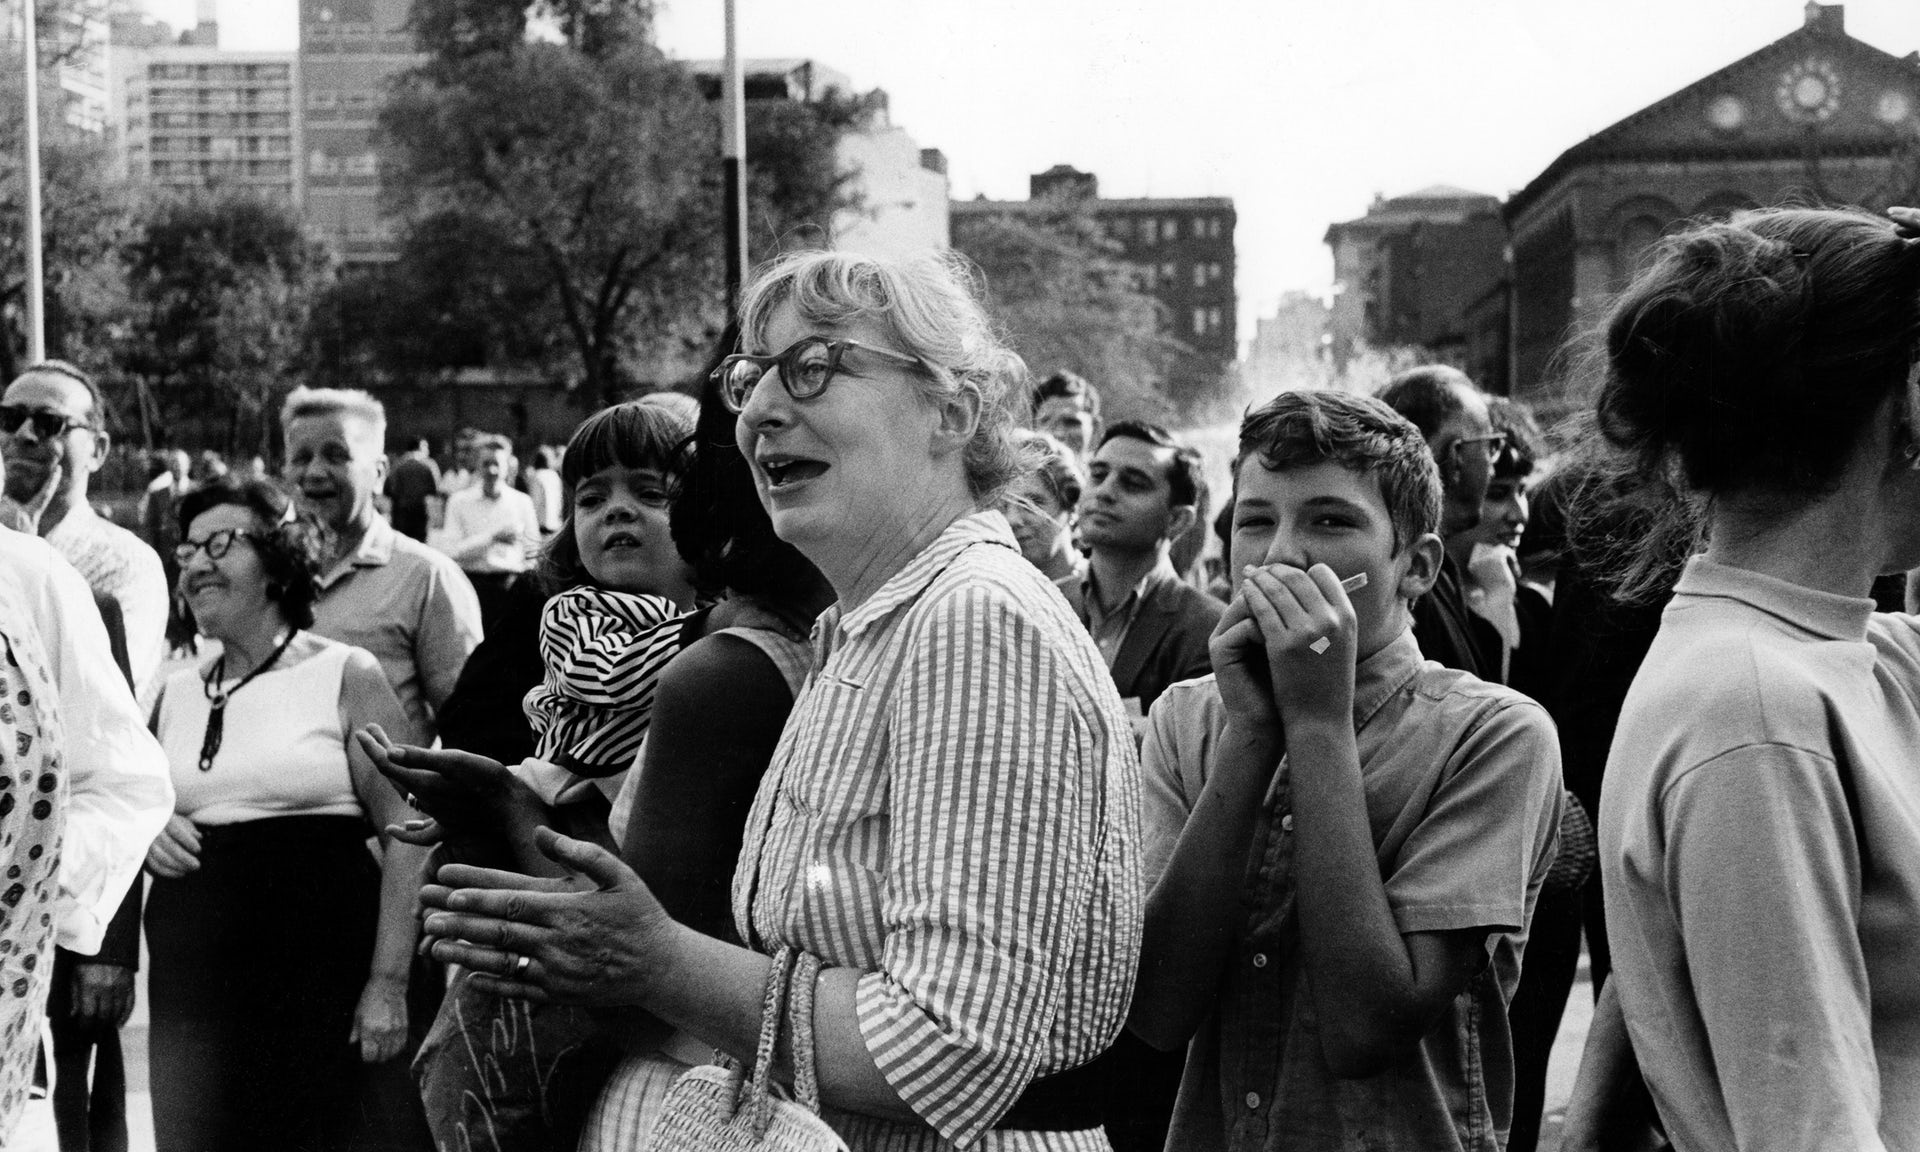 Jane Jacobs at work  source:  https://www.theguardian.com/cities/2016/apr/28/story-cities-32-new-york-jane-jacobs-robert-moses#img-1